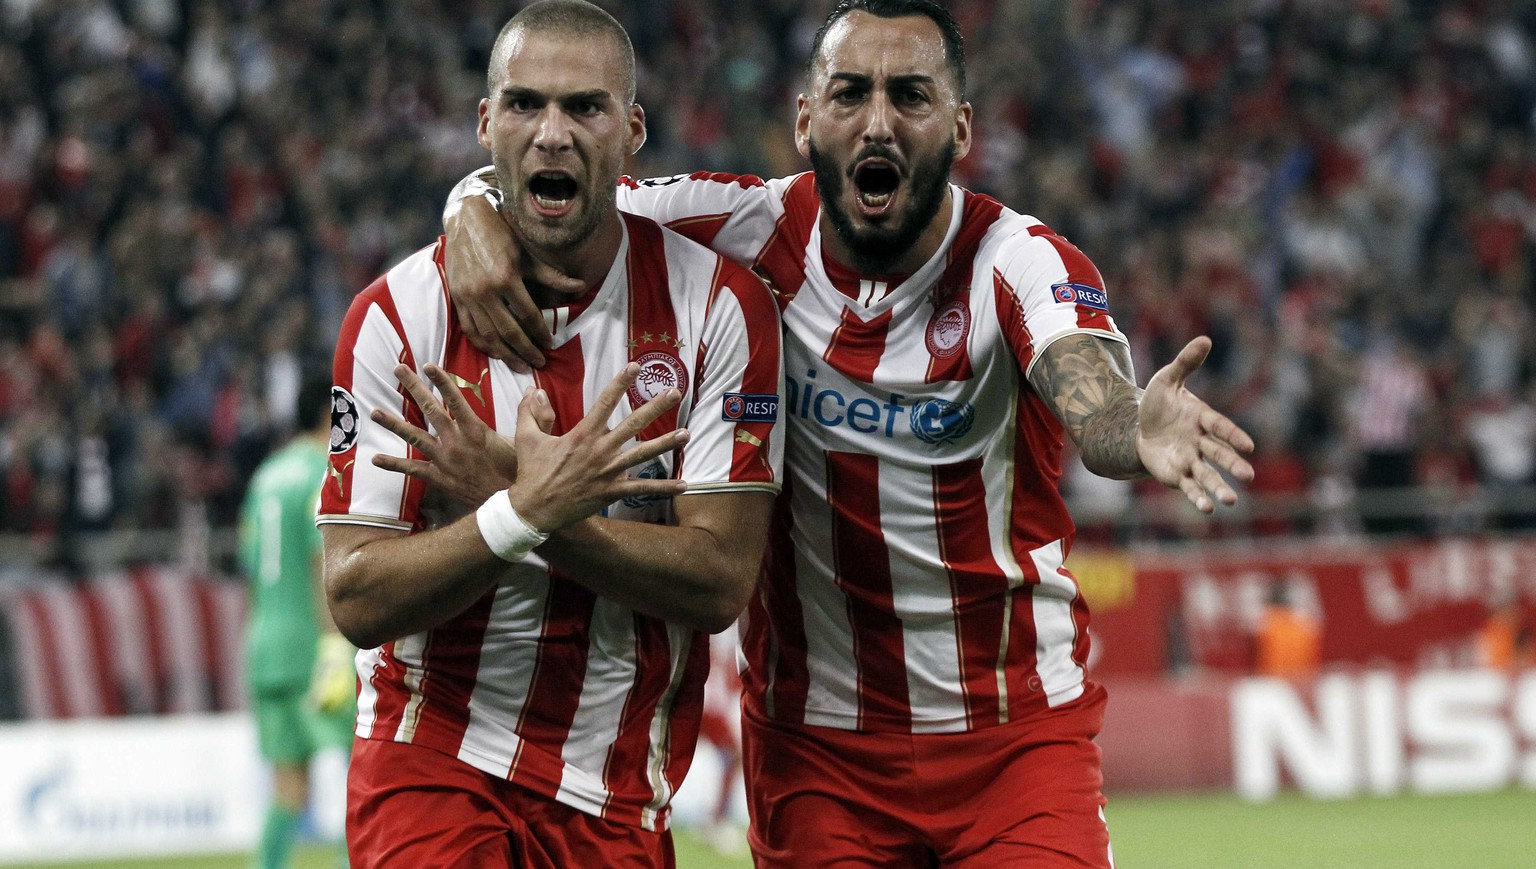 Olympiakos' Pajtim Kasami (L) celebrates his goal with teammate Kostas Mitroglou during their Champions League soccer match against Juventus at Karaiskaki stadium at Karaiskaki stadium in Piraeus, near Athens, October 22, 2014.  REUTERS/Alkis Konstantinidis  (GREECE - Tags: SPORT SOCCER)